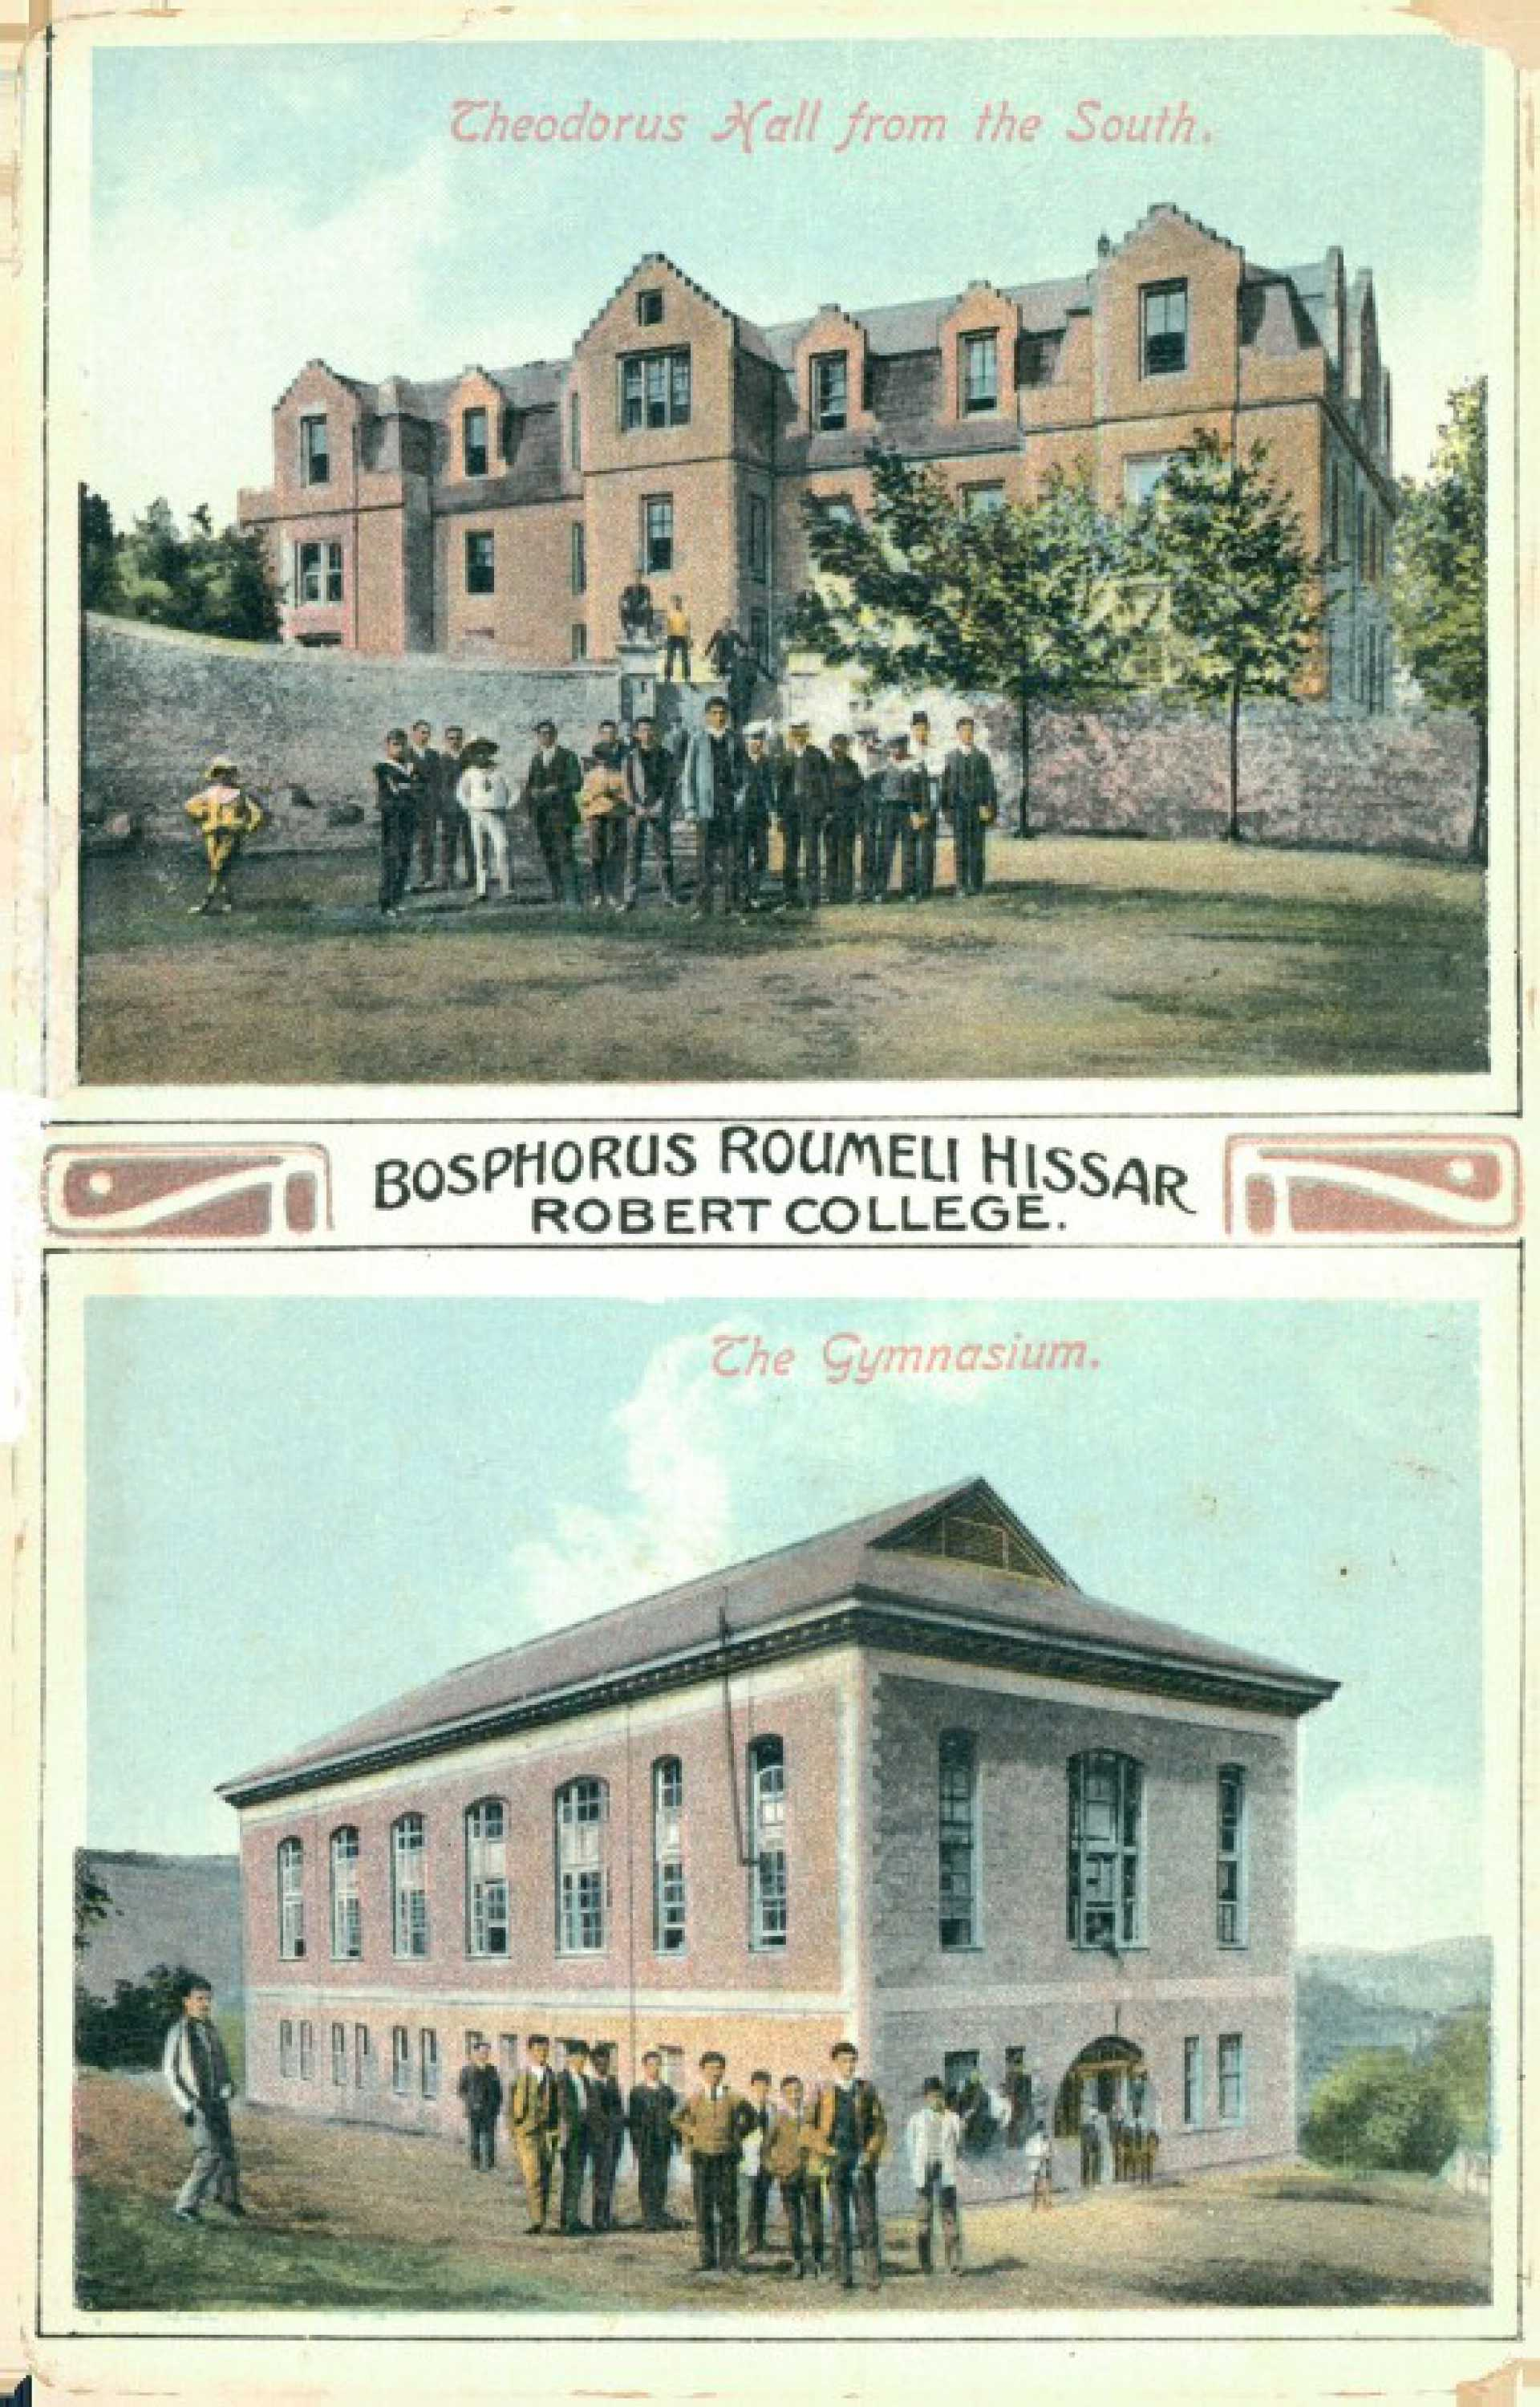 Bosphorus Roumeli Hissar Robert College.